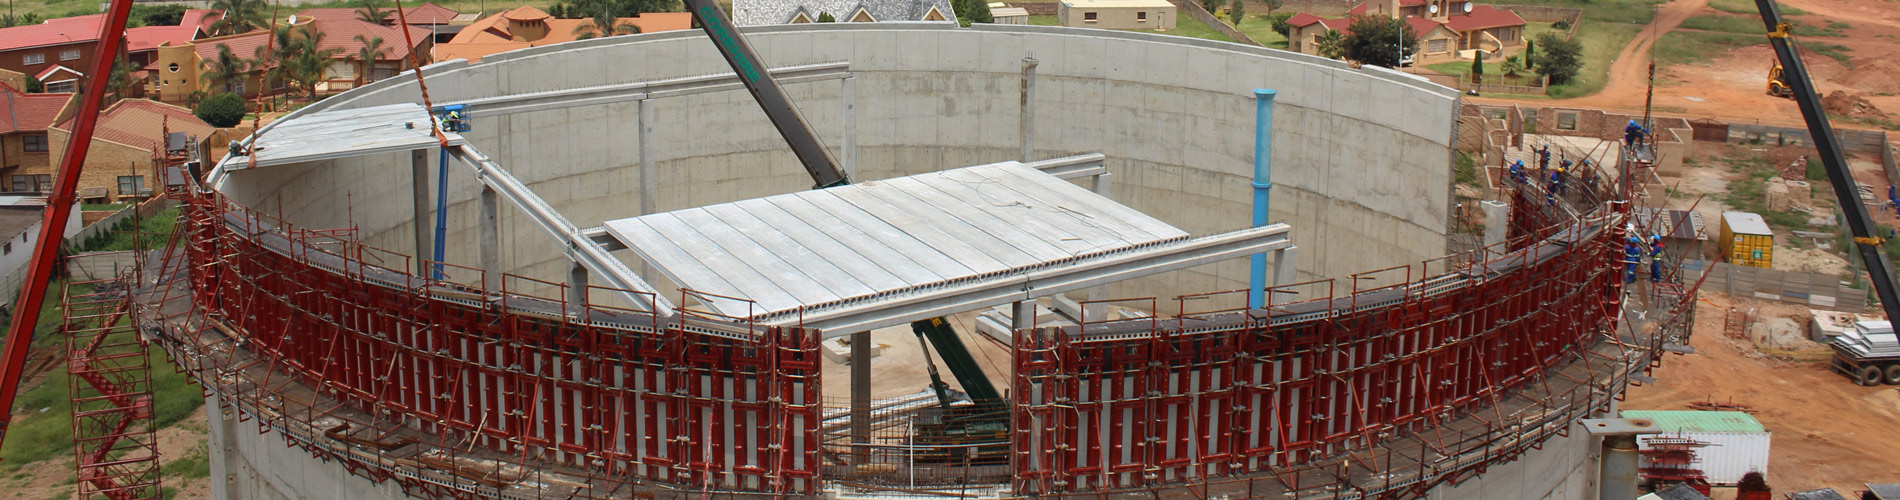 We are a leading designer, manufacturer and builder of pre-cast concrete structures